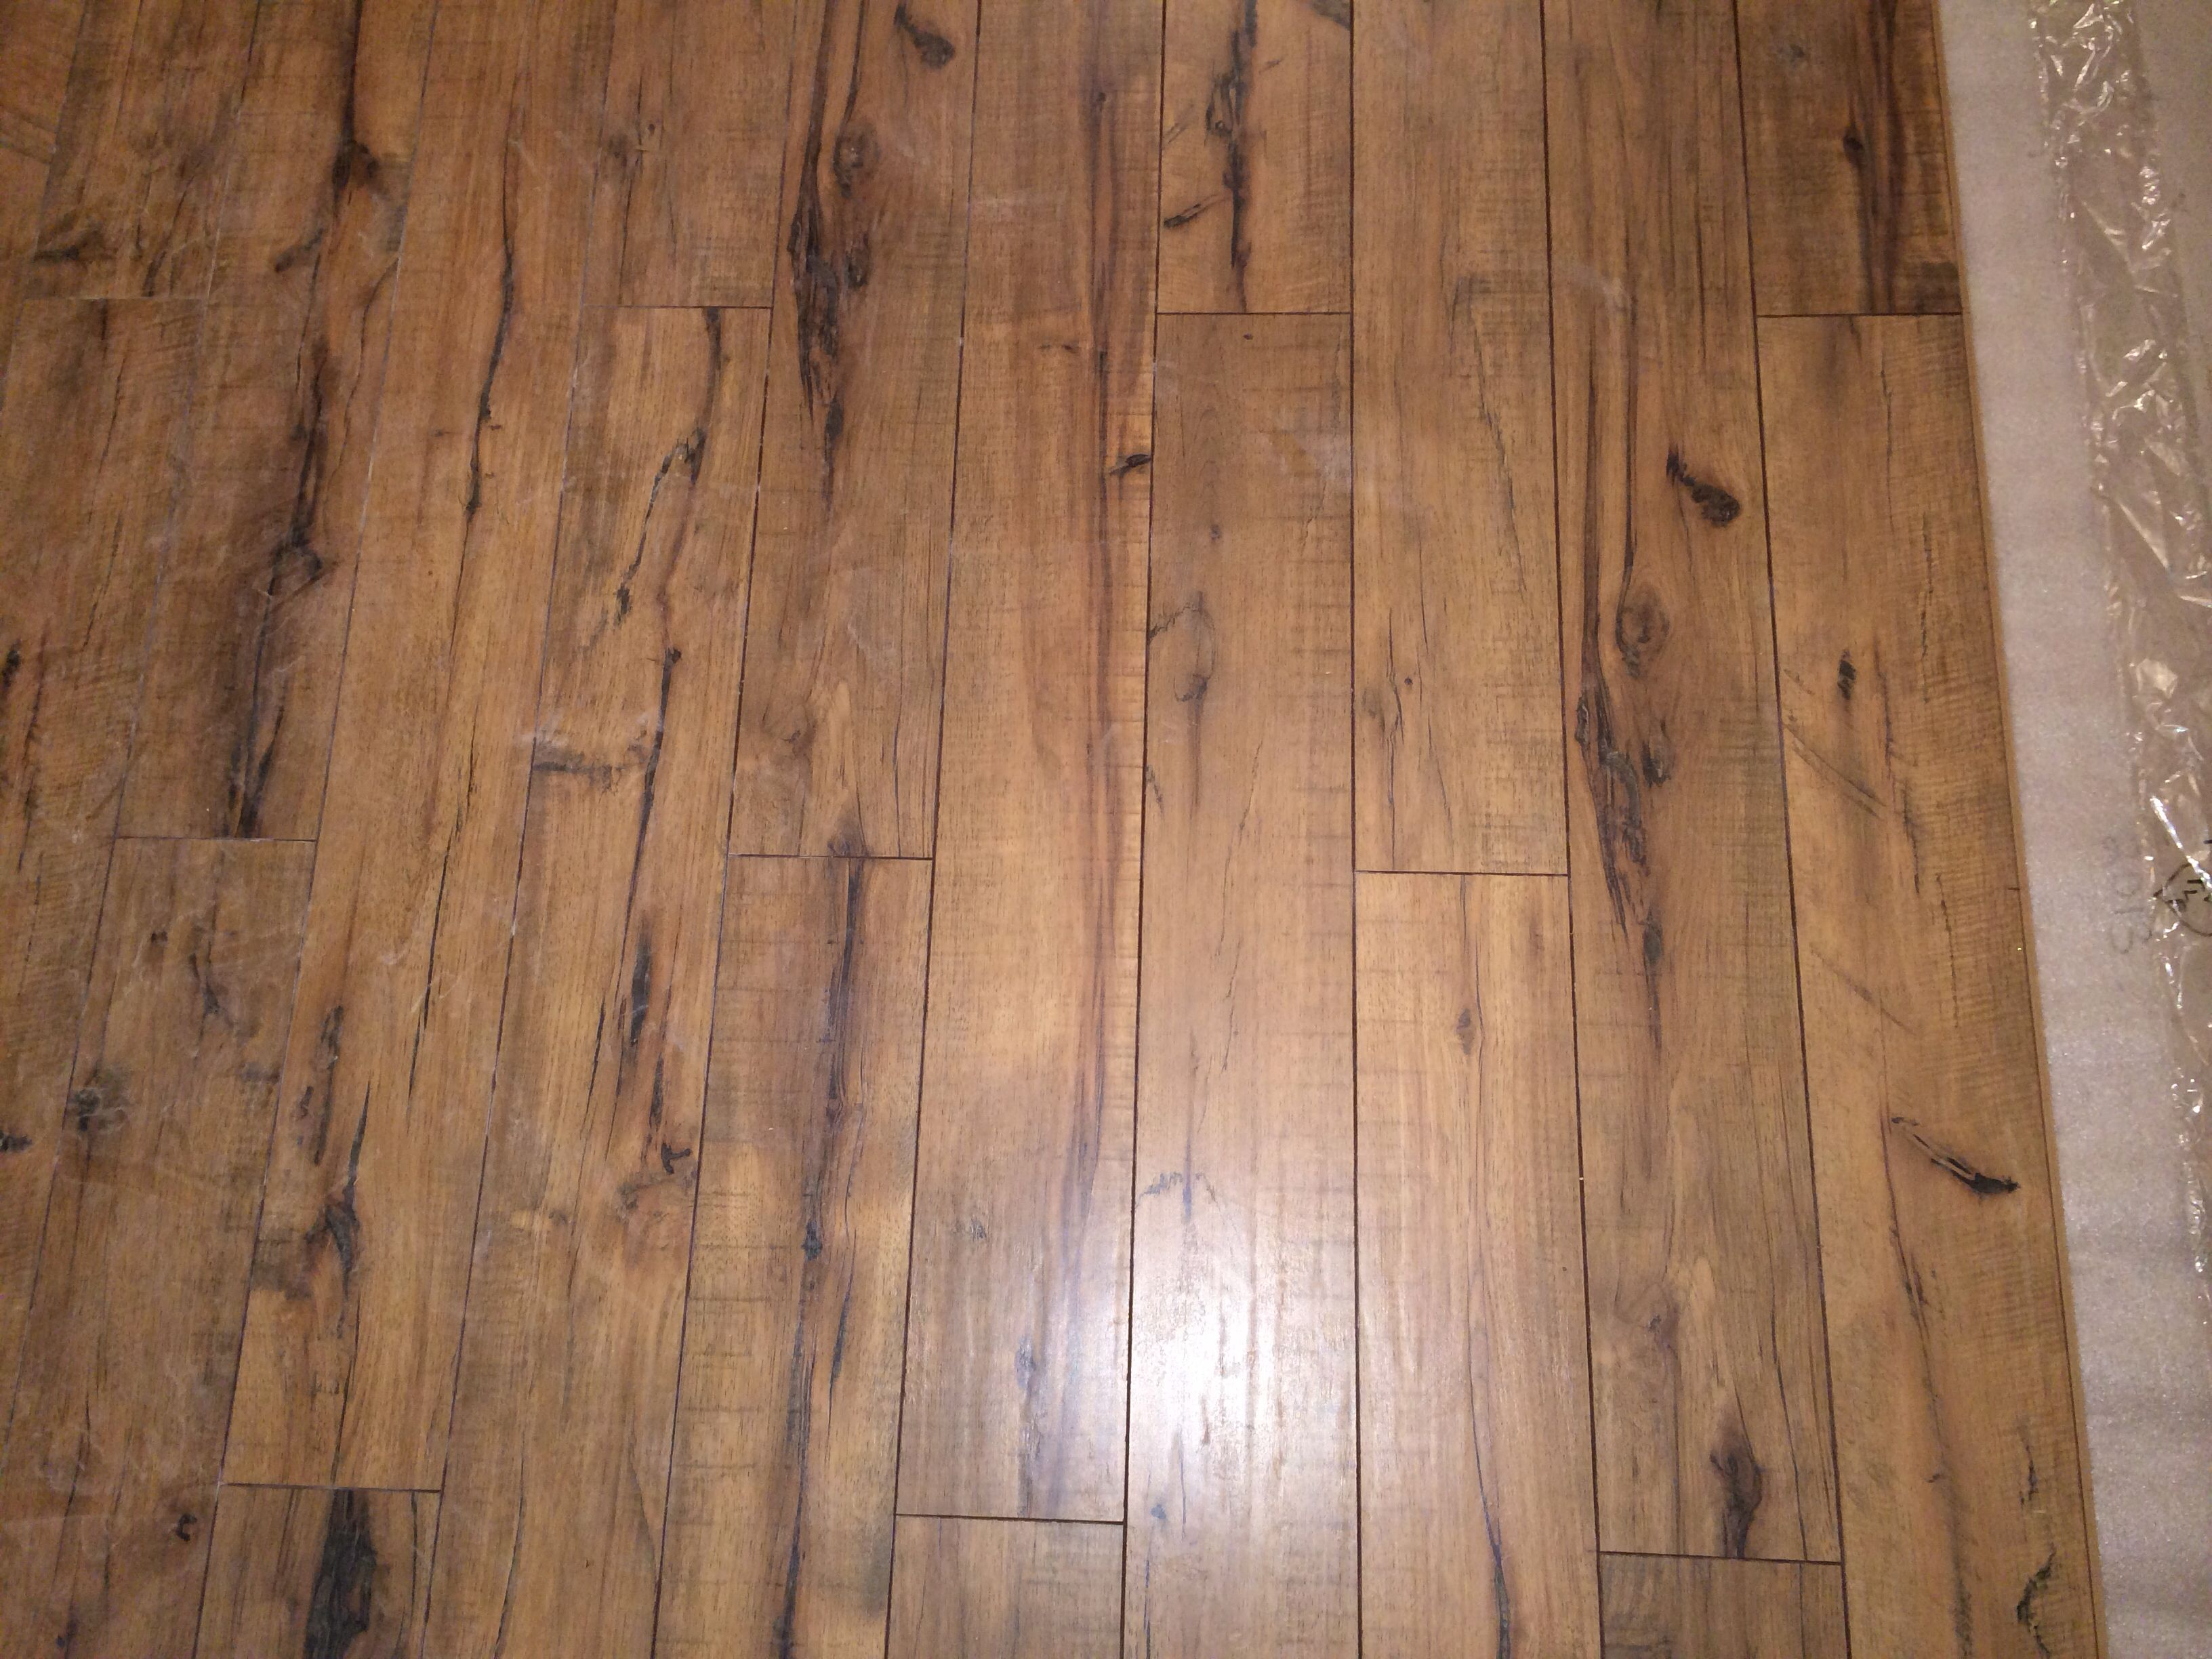 Pin by Emily Nunley on My house  Flooring, Laminate flooring